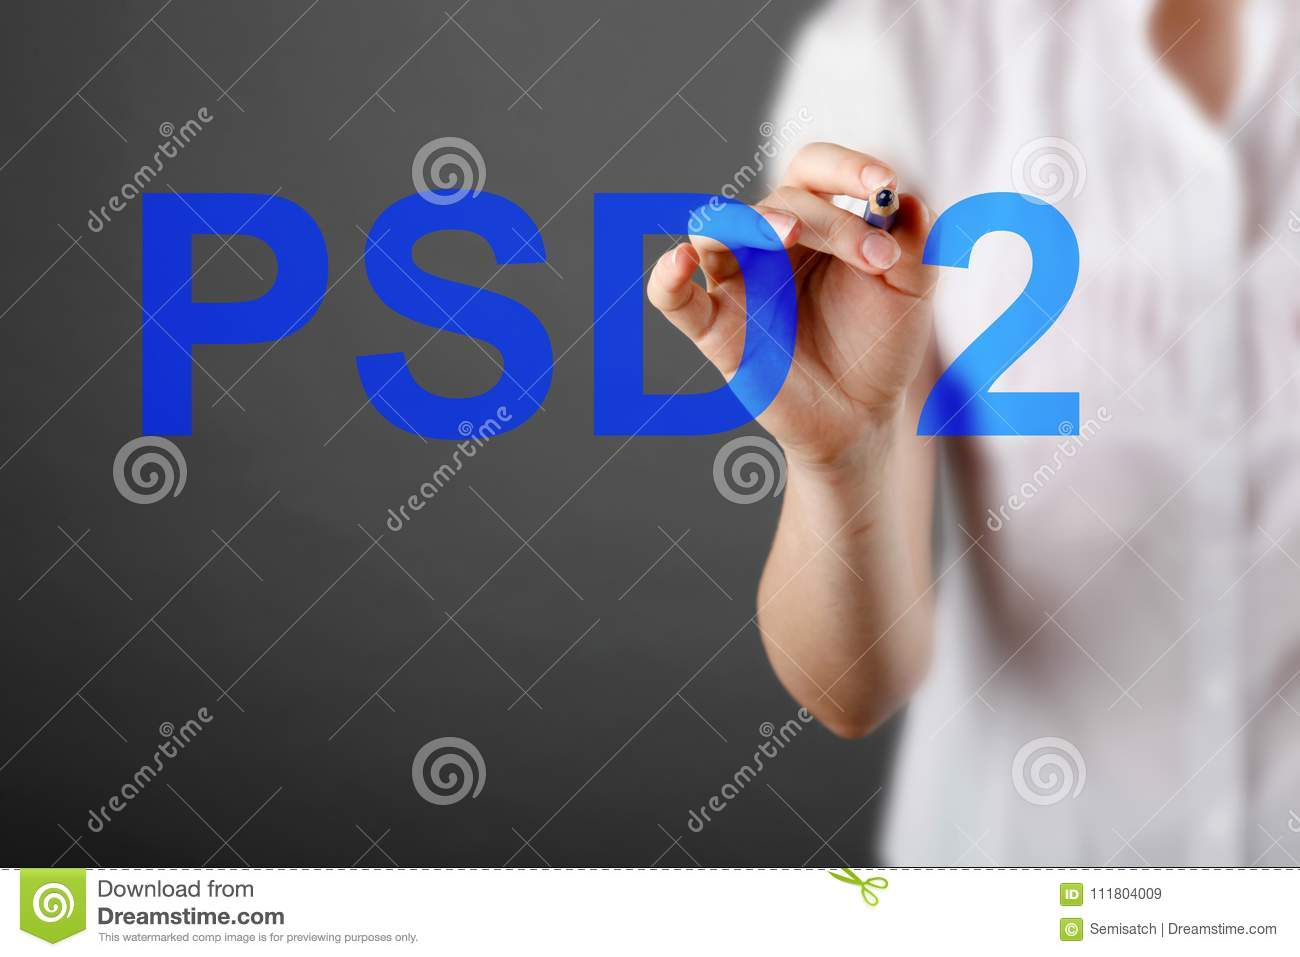 Concept of PSD2 - Payment services directive